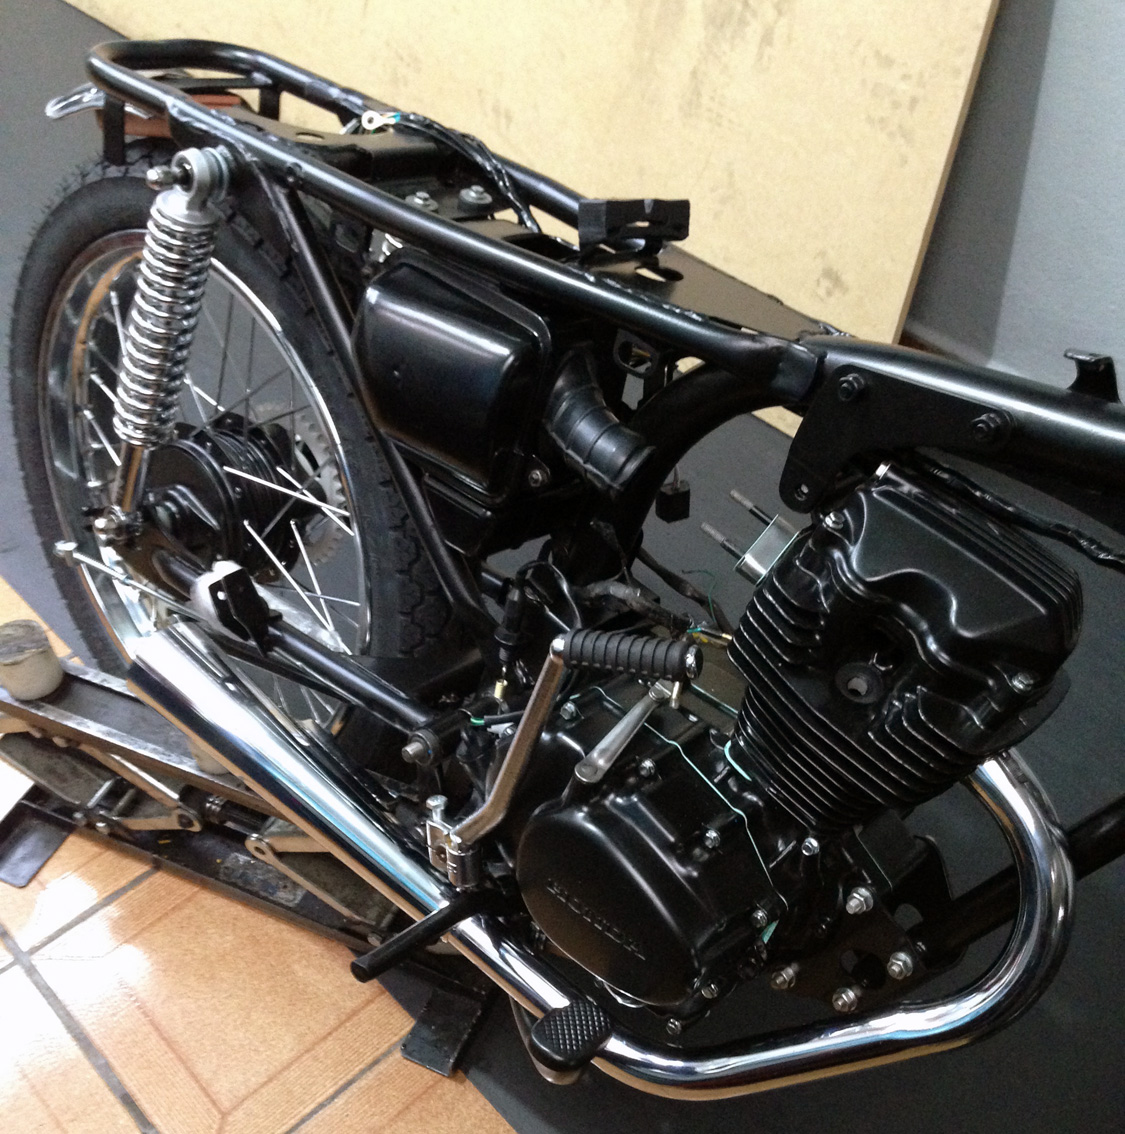 5_cg_moto_customizada_cafe_racer_custom_chopper_bobber_speed_retro_vintage_personalizada_pintura_mot